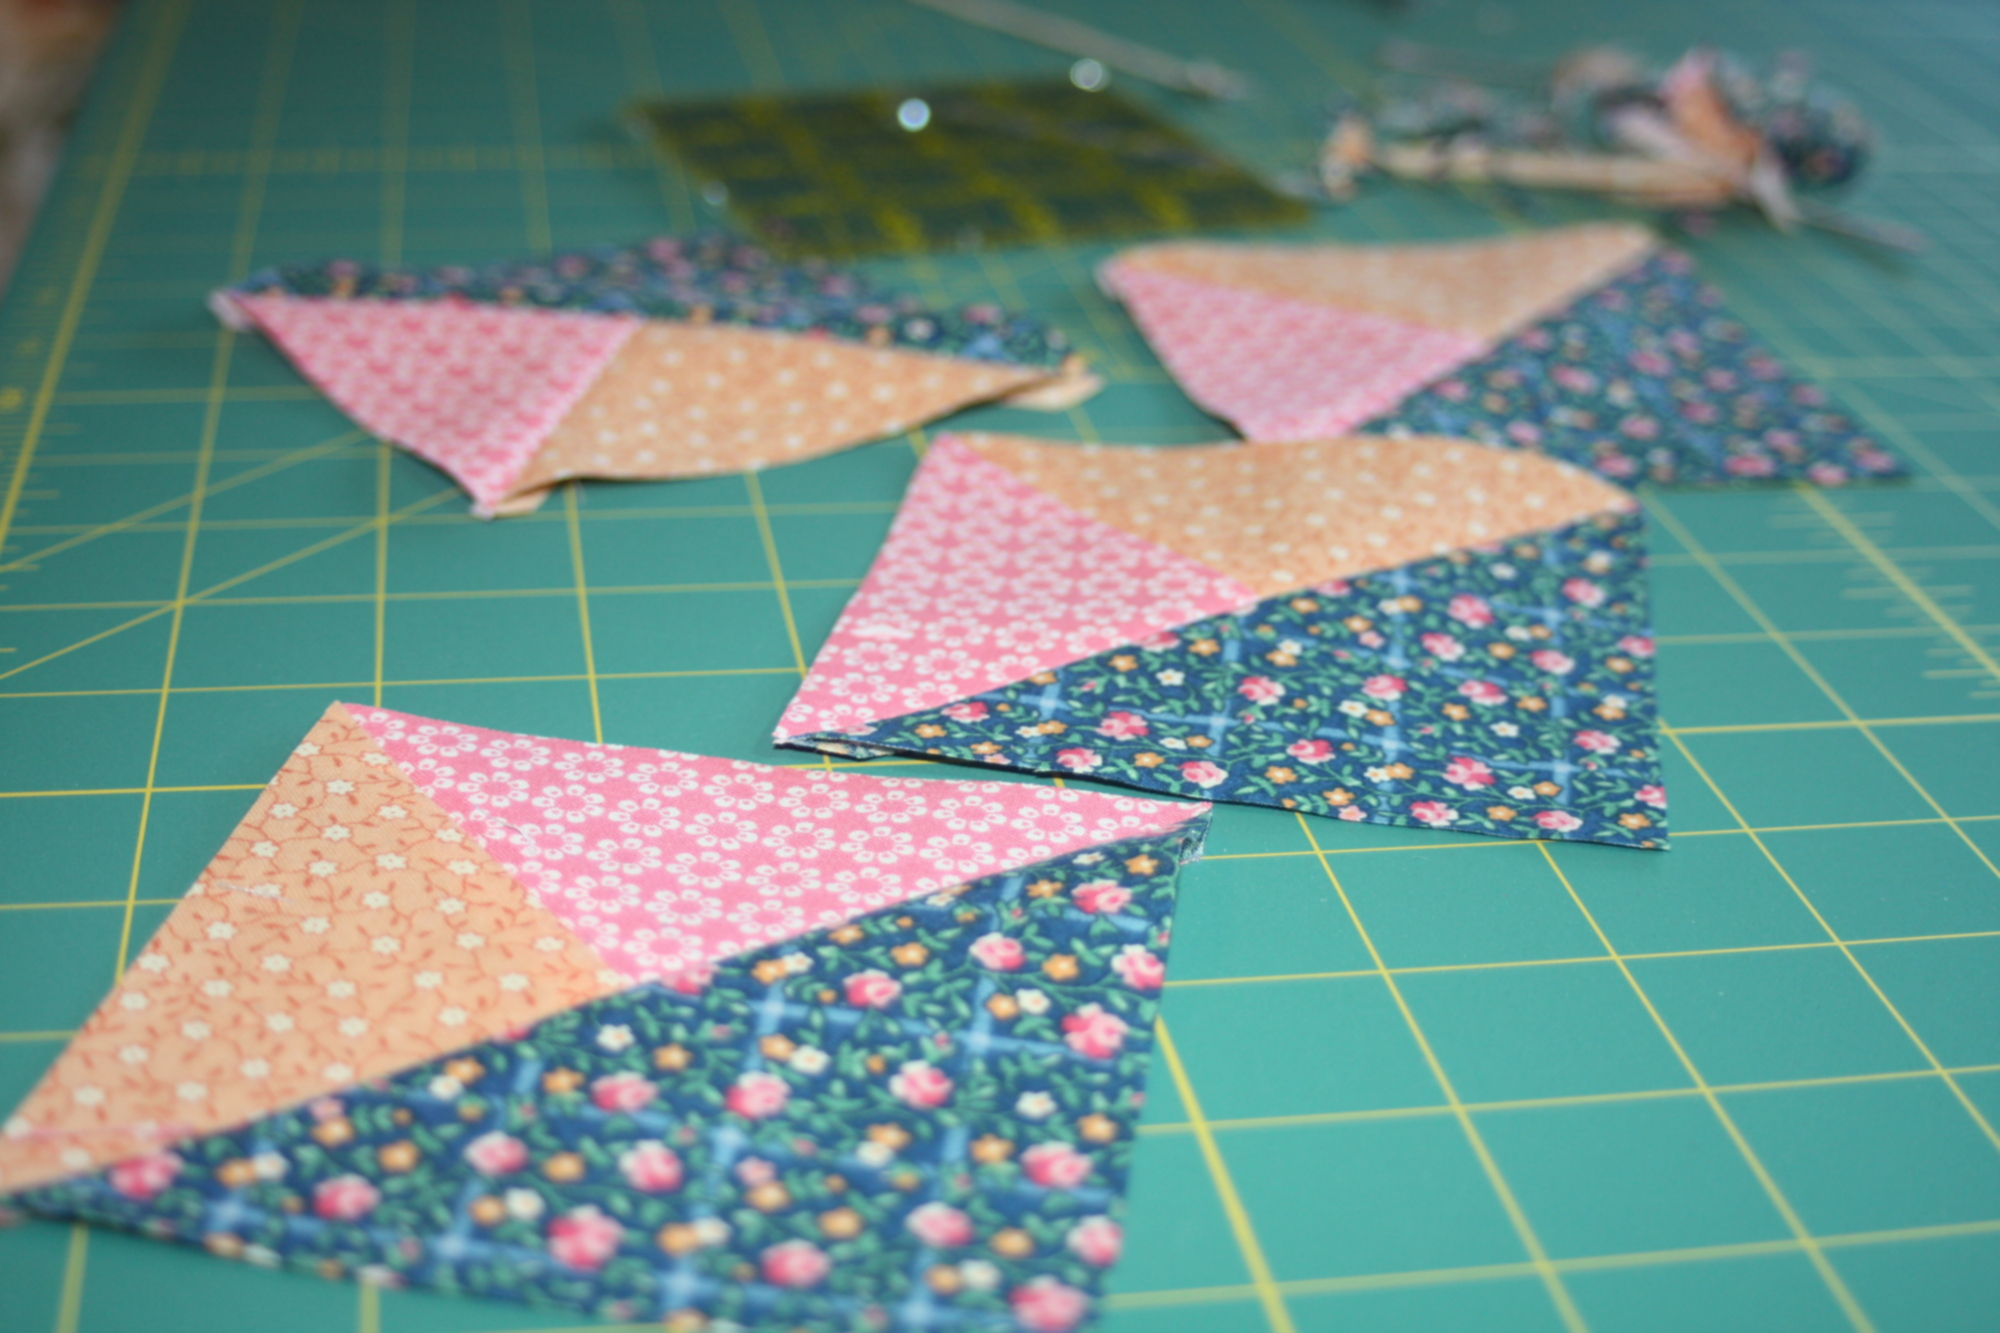 The path, preparing to cut and quilt